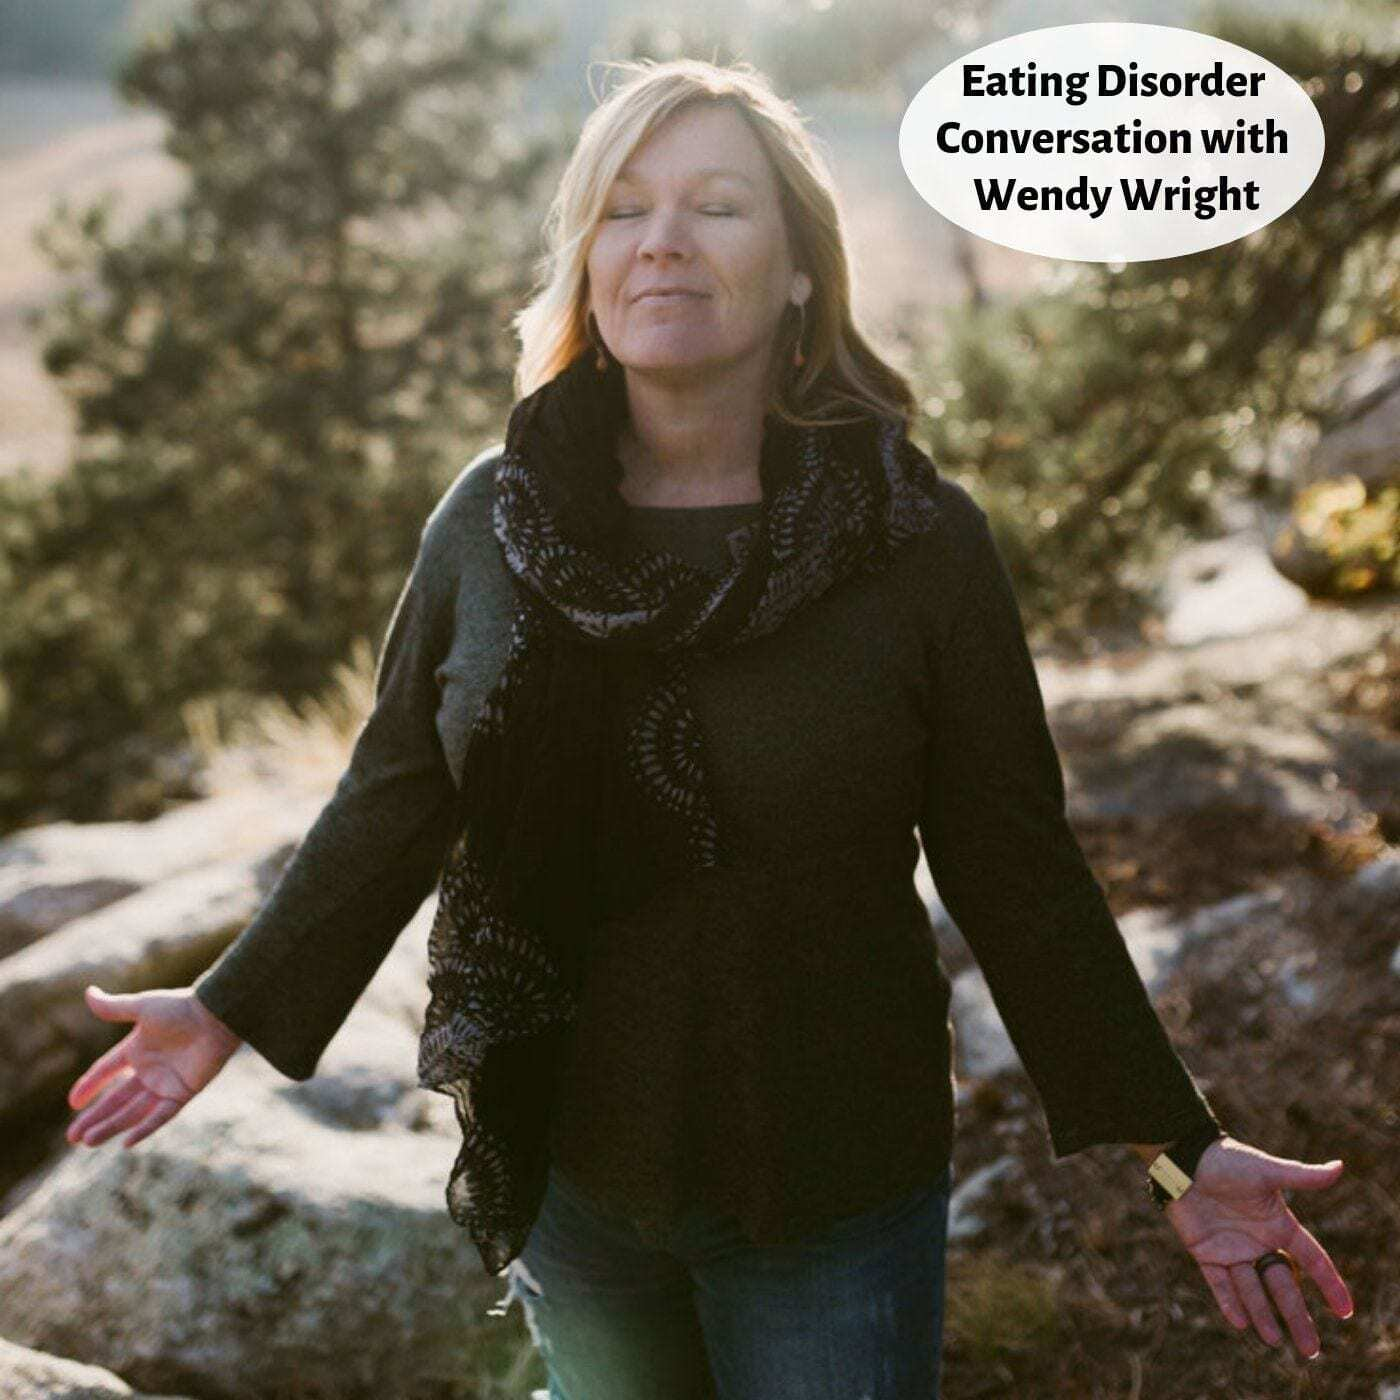 I Have An Eating Disorder Now What cover image for podcast with wendy wright